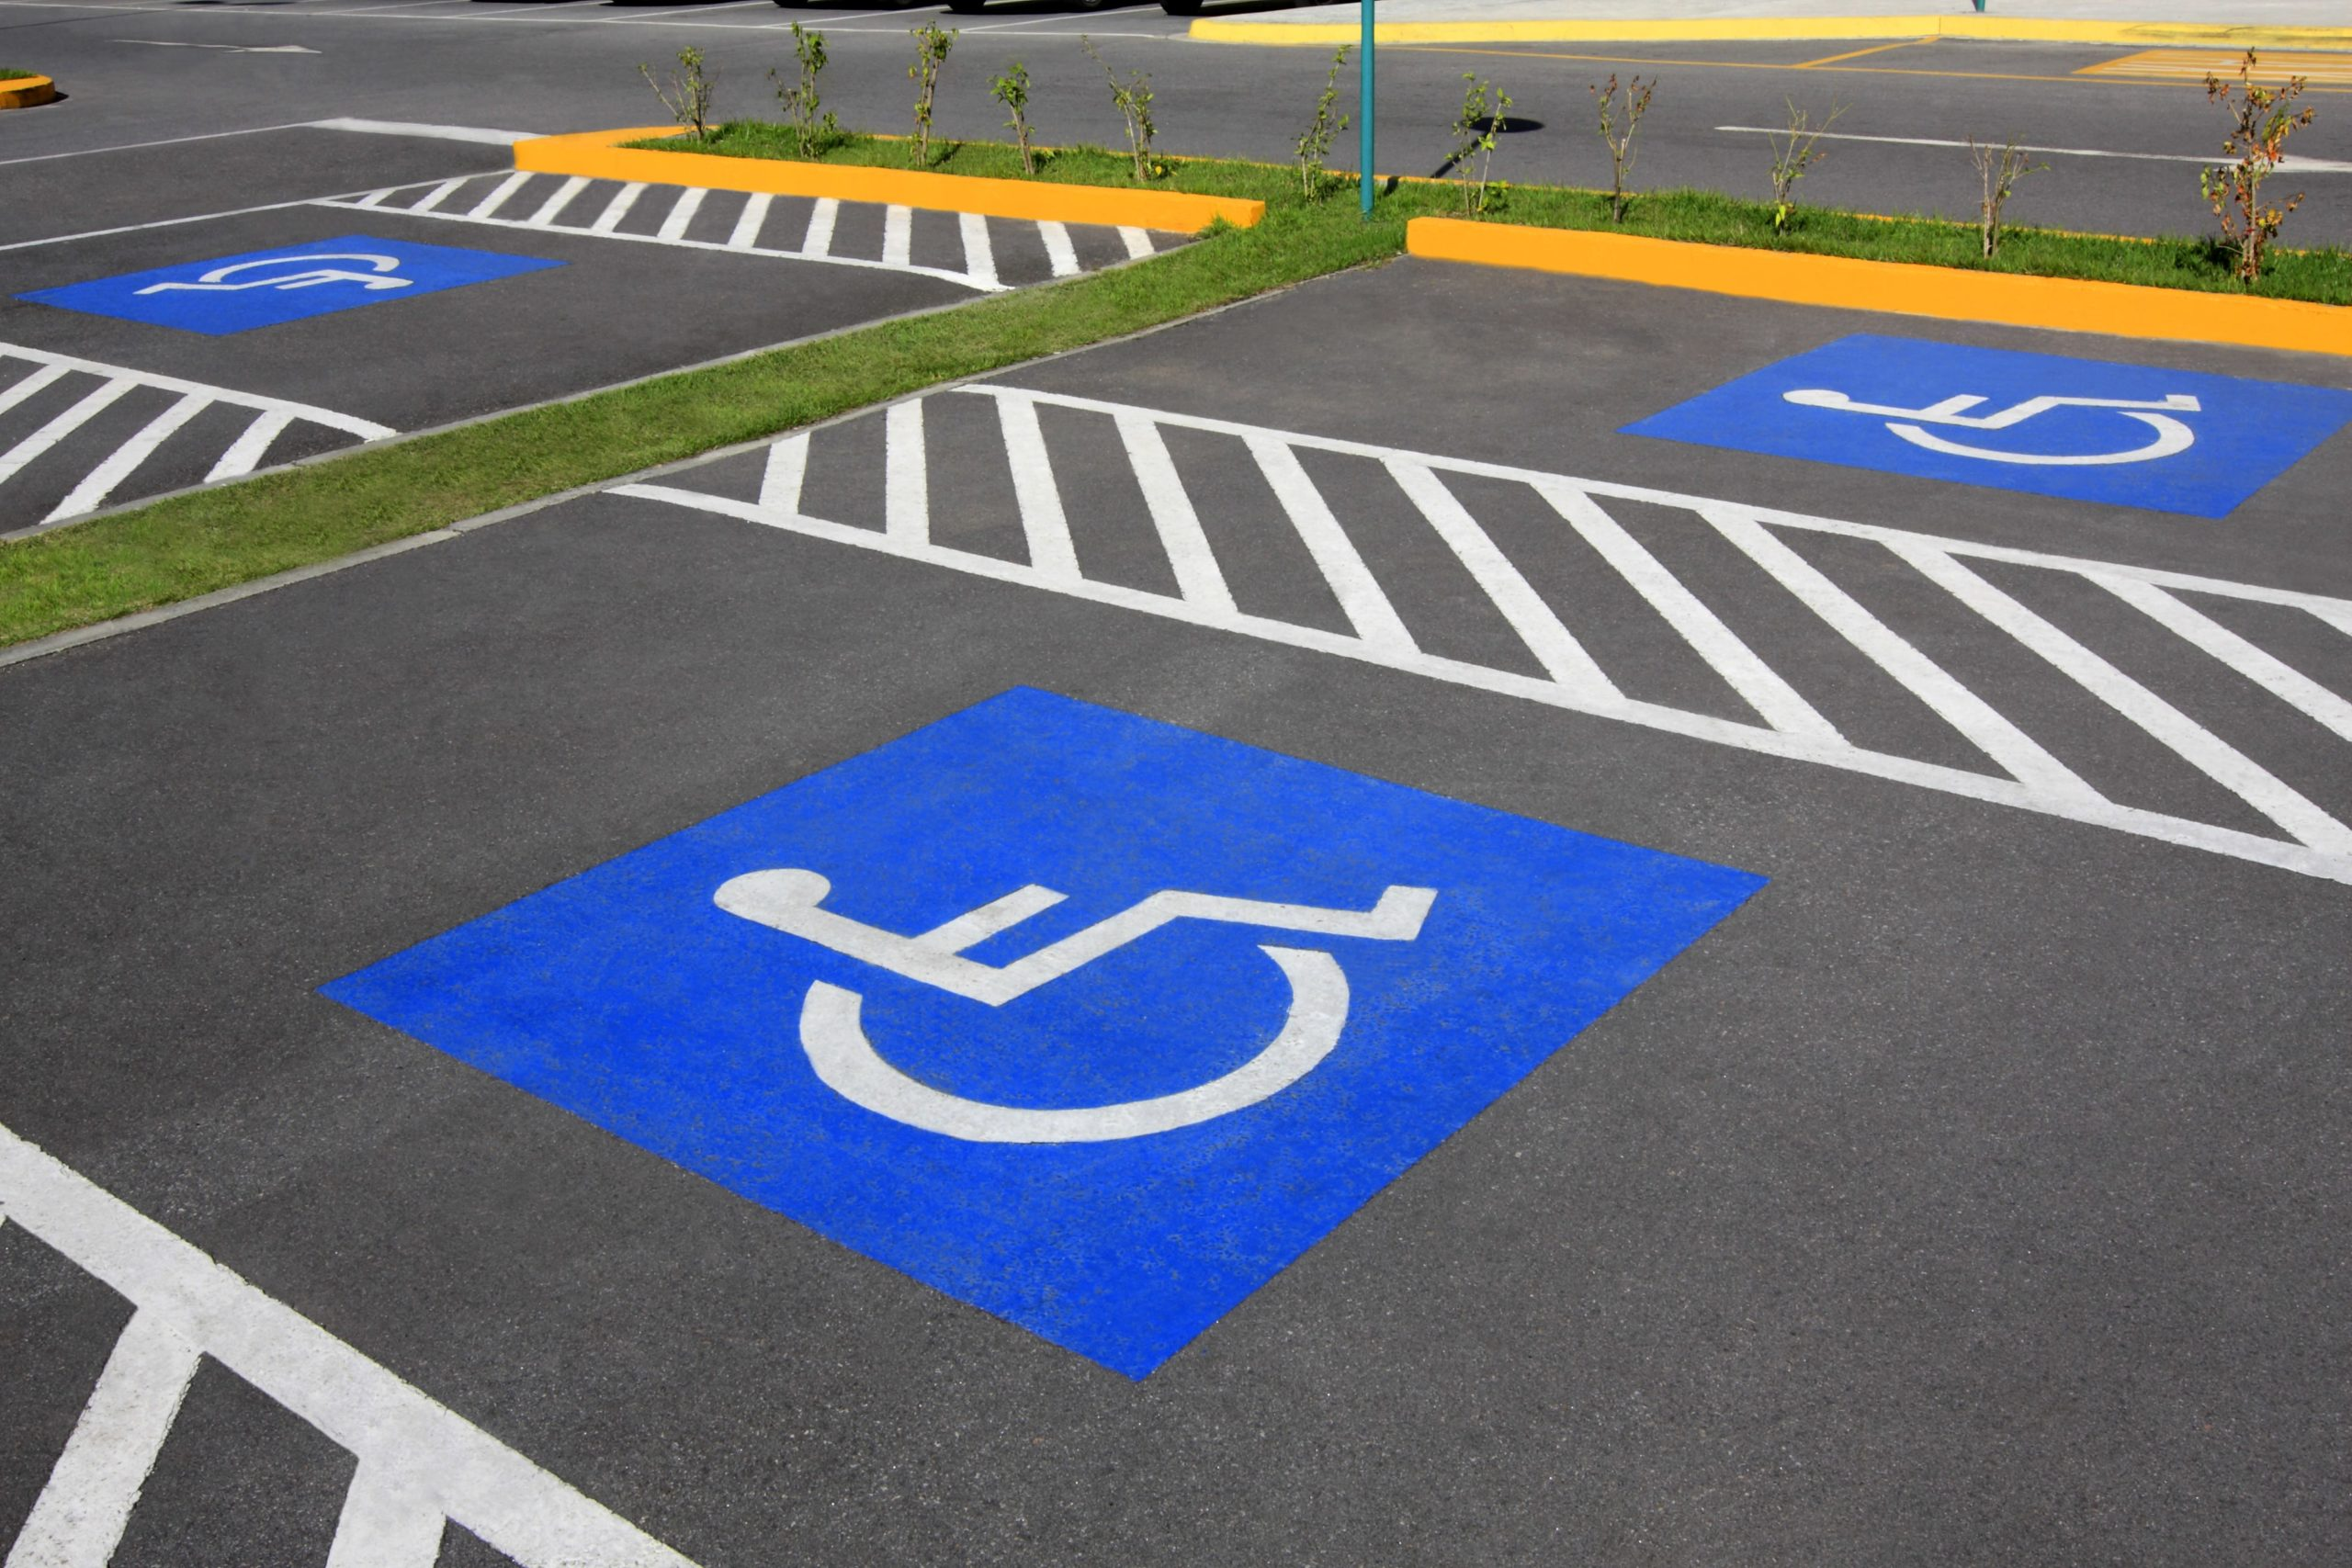 A handicap parking space in an ADA-compliant parking lot